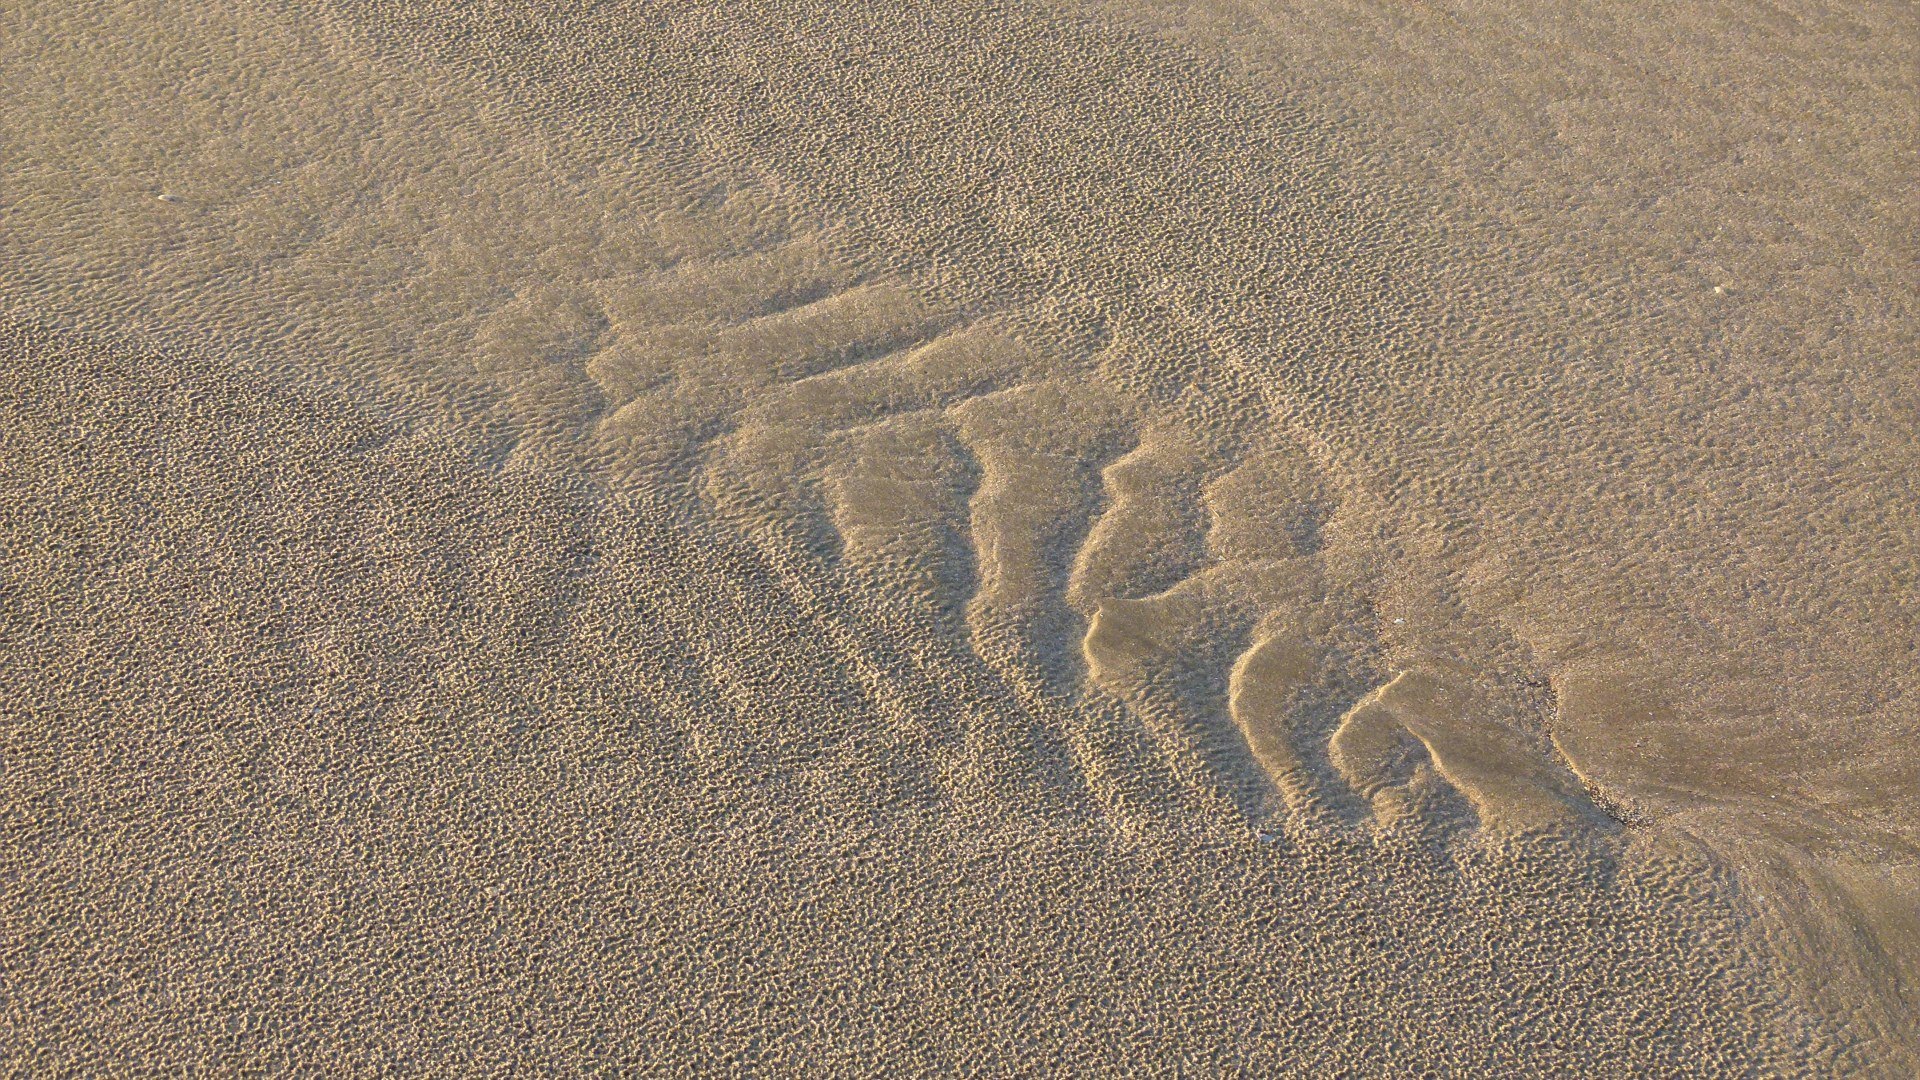 Natural abstract ripple patterns in the sand on a beach